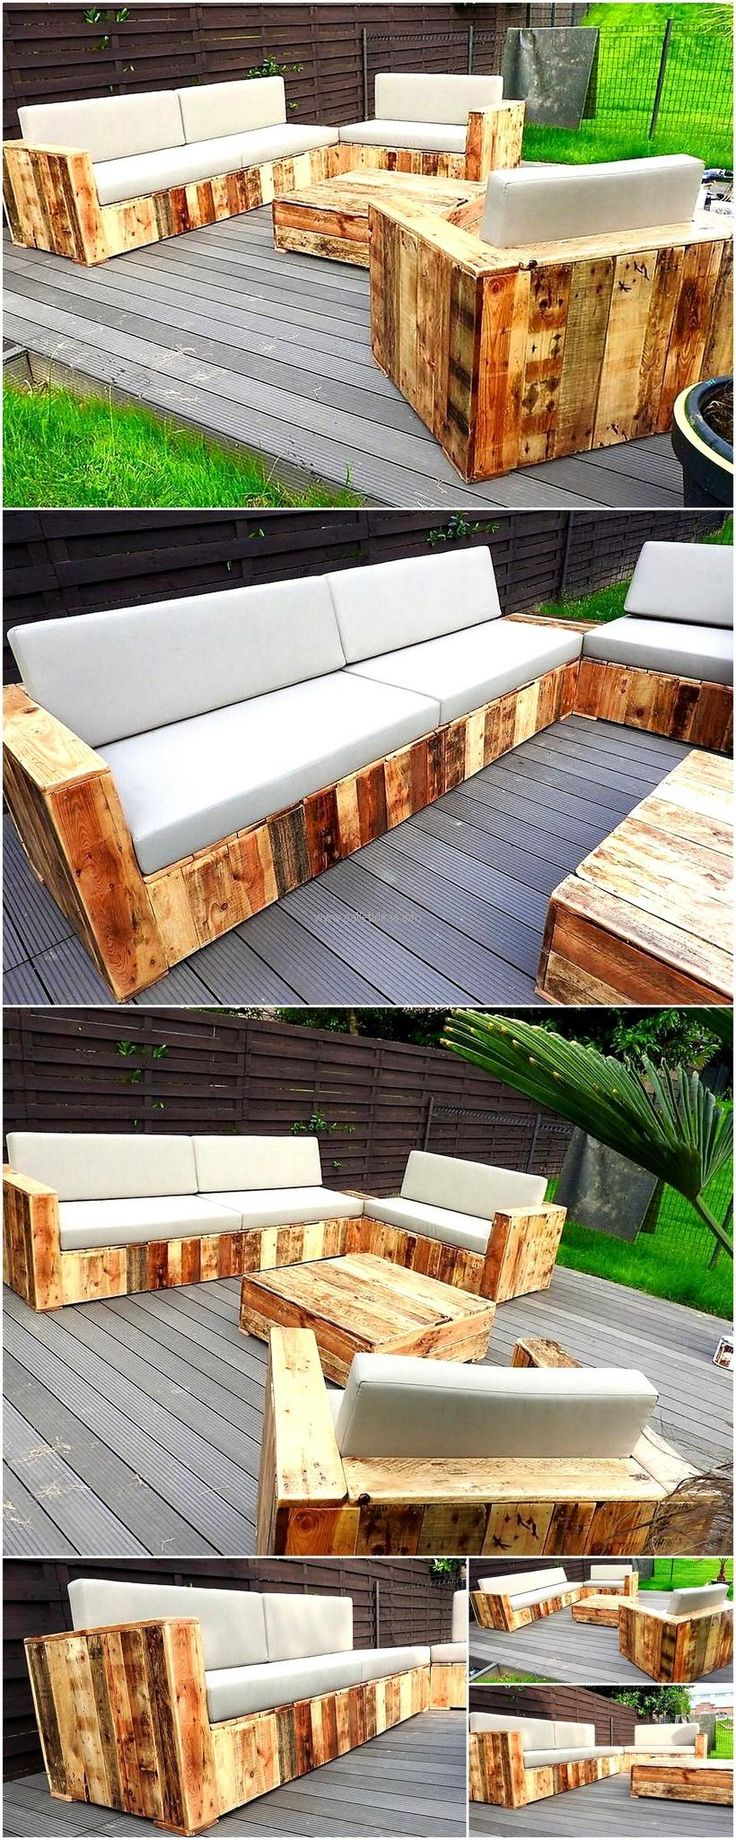 Homemade outdoor furniture ideas - Easy To Make Wood Pallet Furniture Ideas